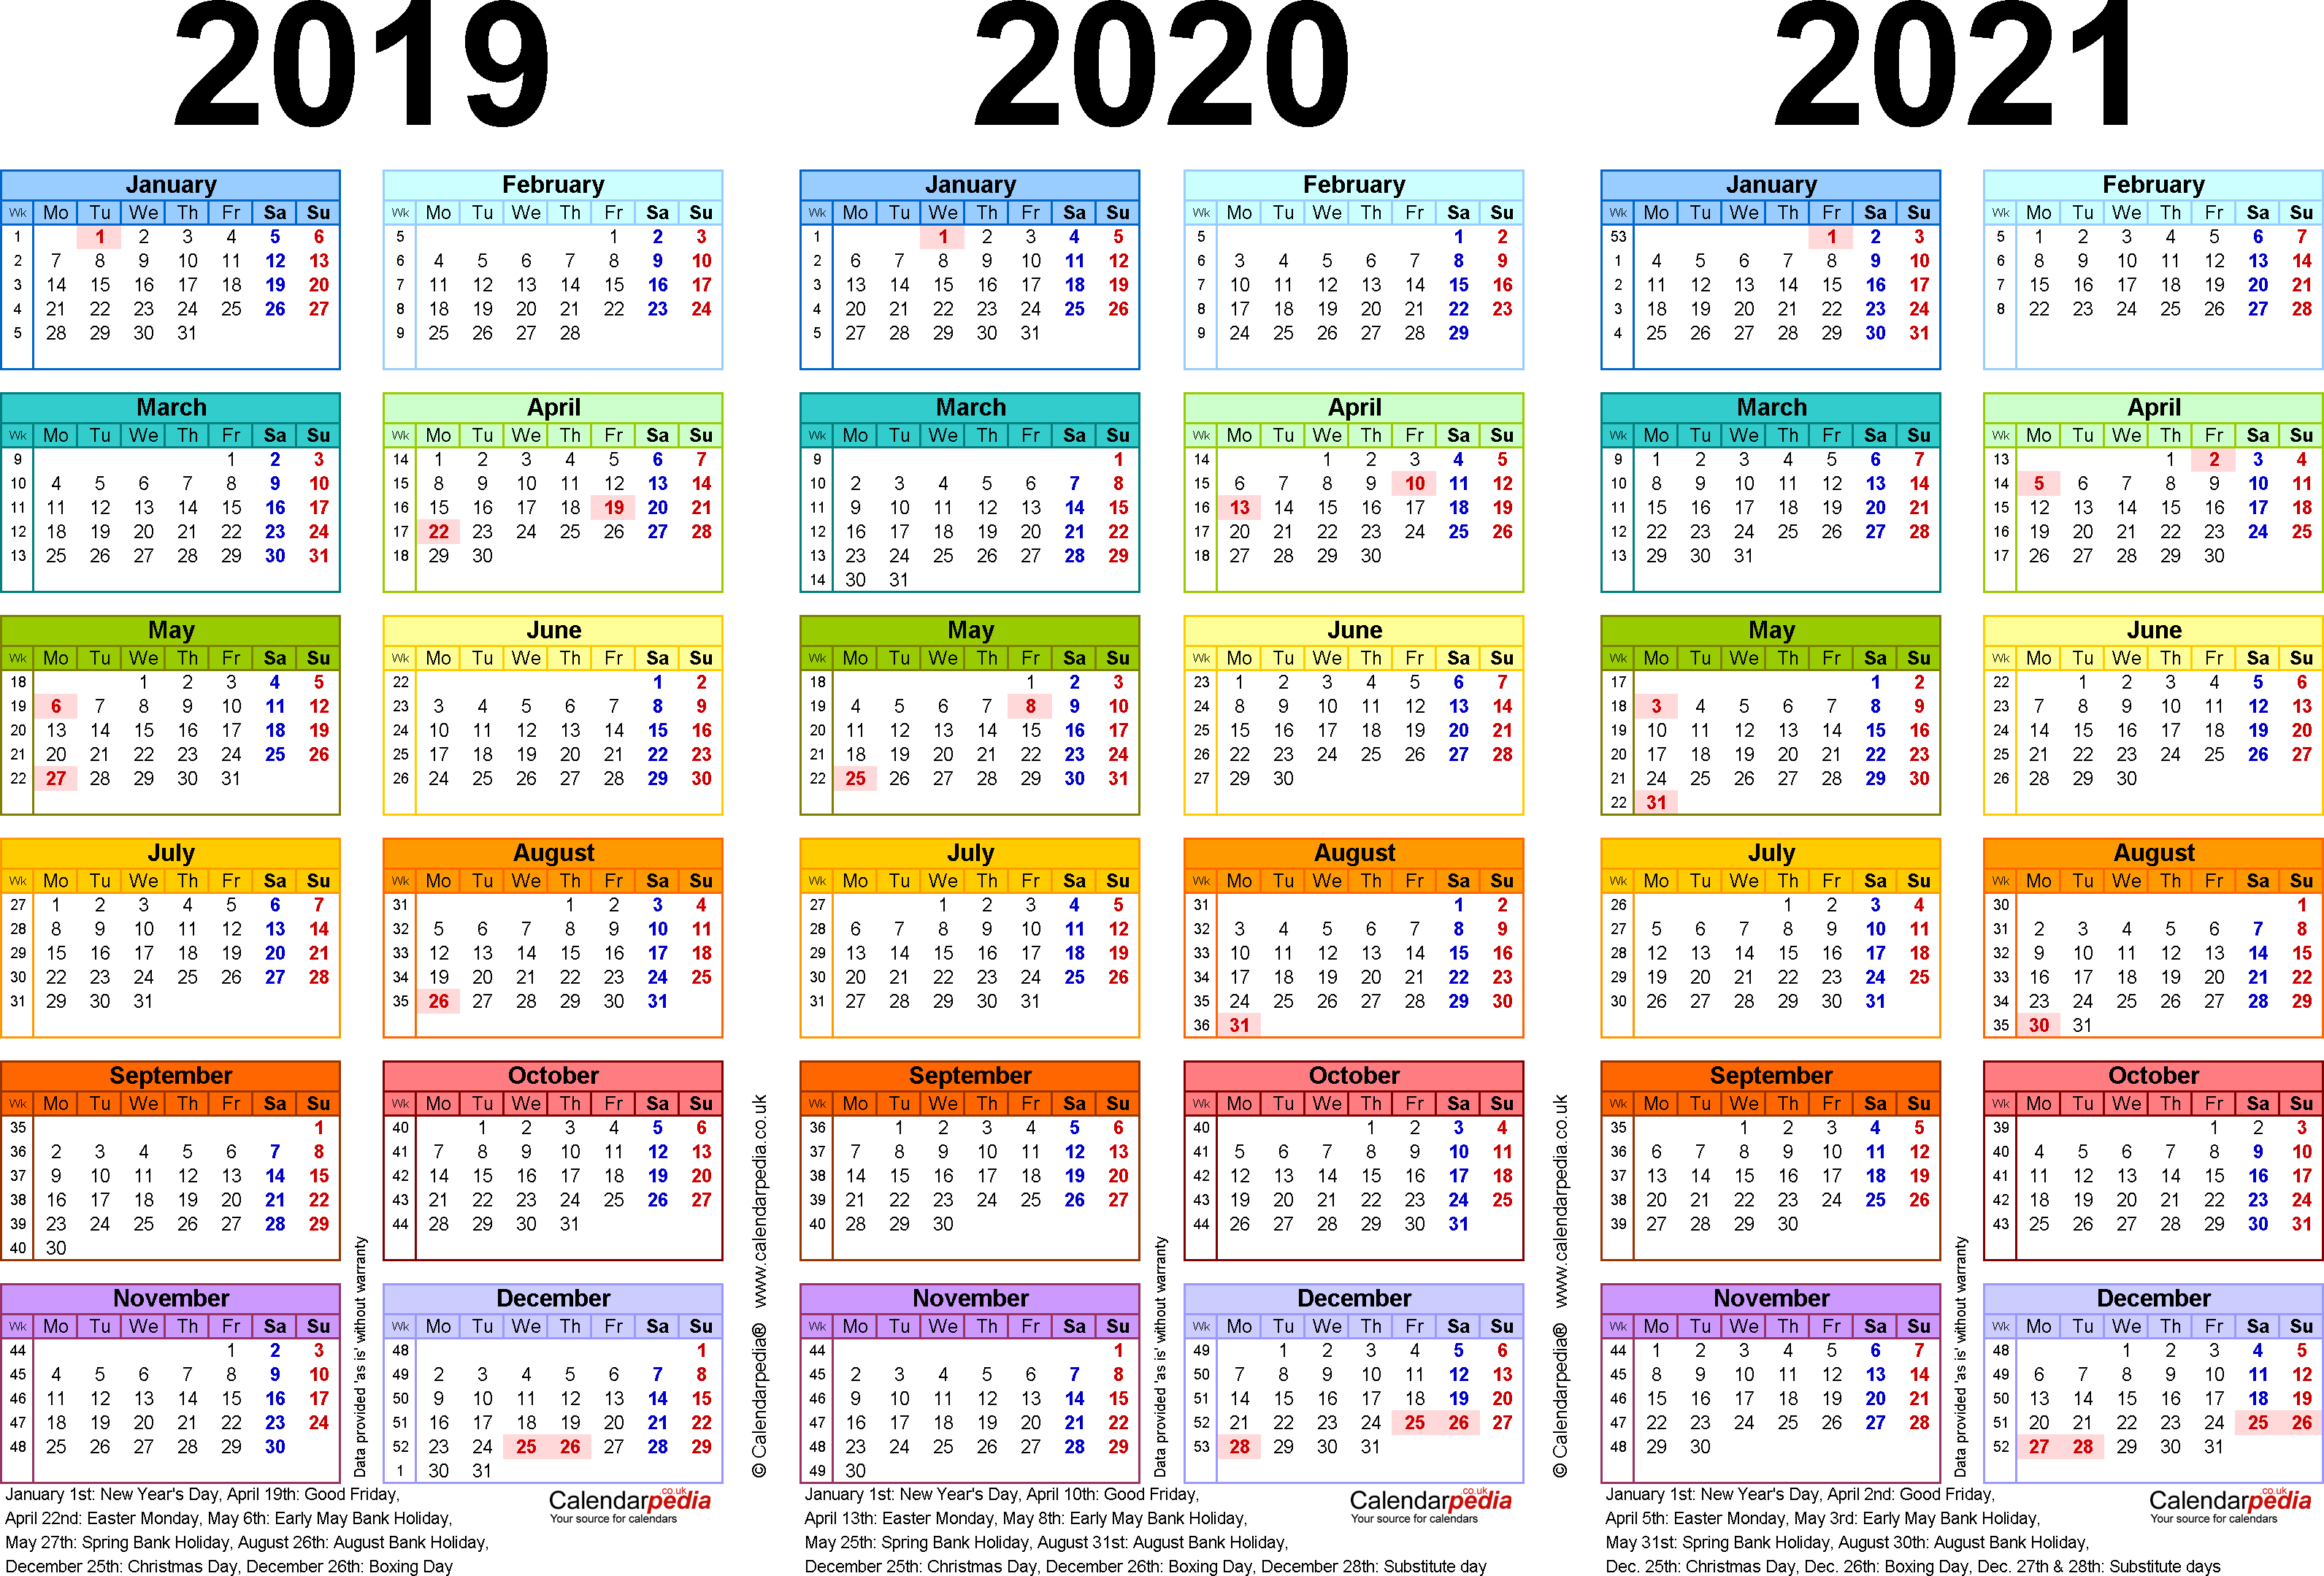 Three Year Calendars For 2019, 2020 & 2021 (Uk) For Excel